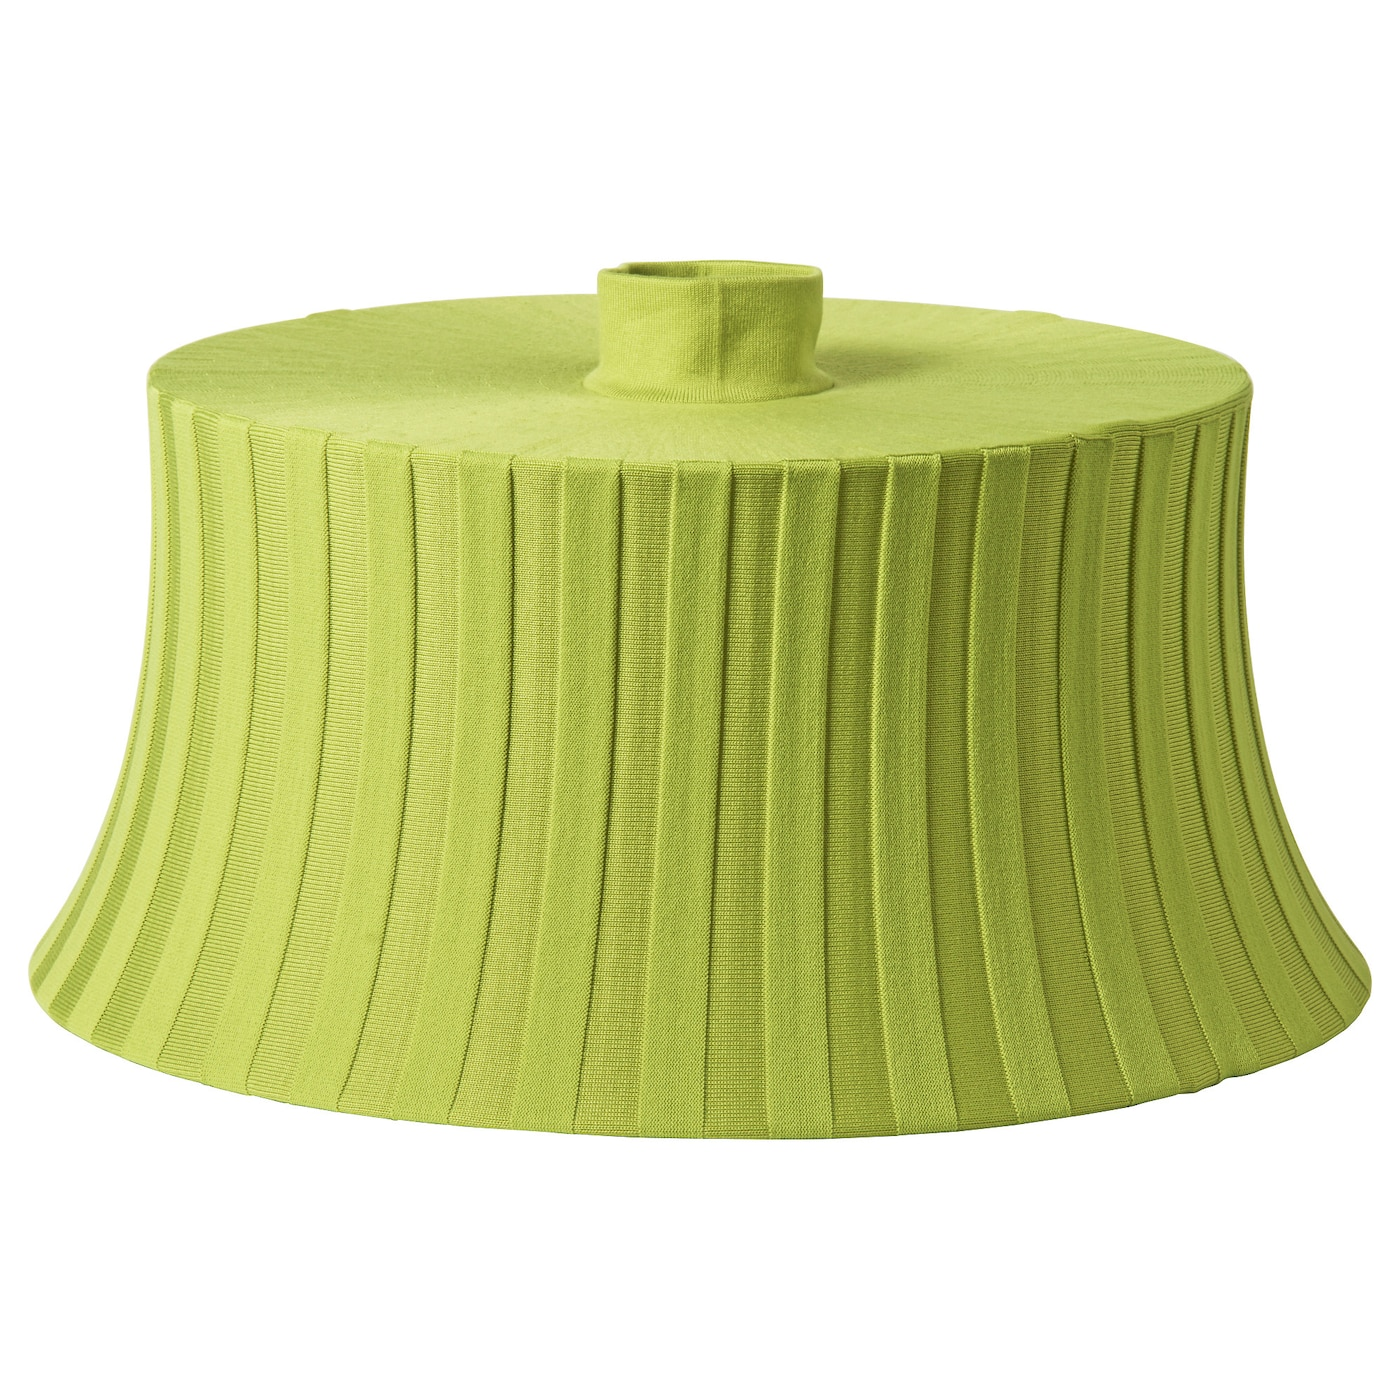 Mtevik lamp shade green 55 cm ikea ikea mtevik lamp shade the shade is easy to keep clean because the fabric is machine mozeypictures Images